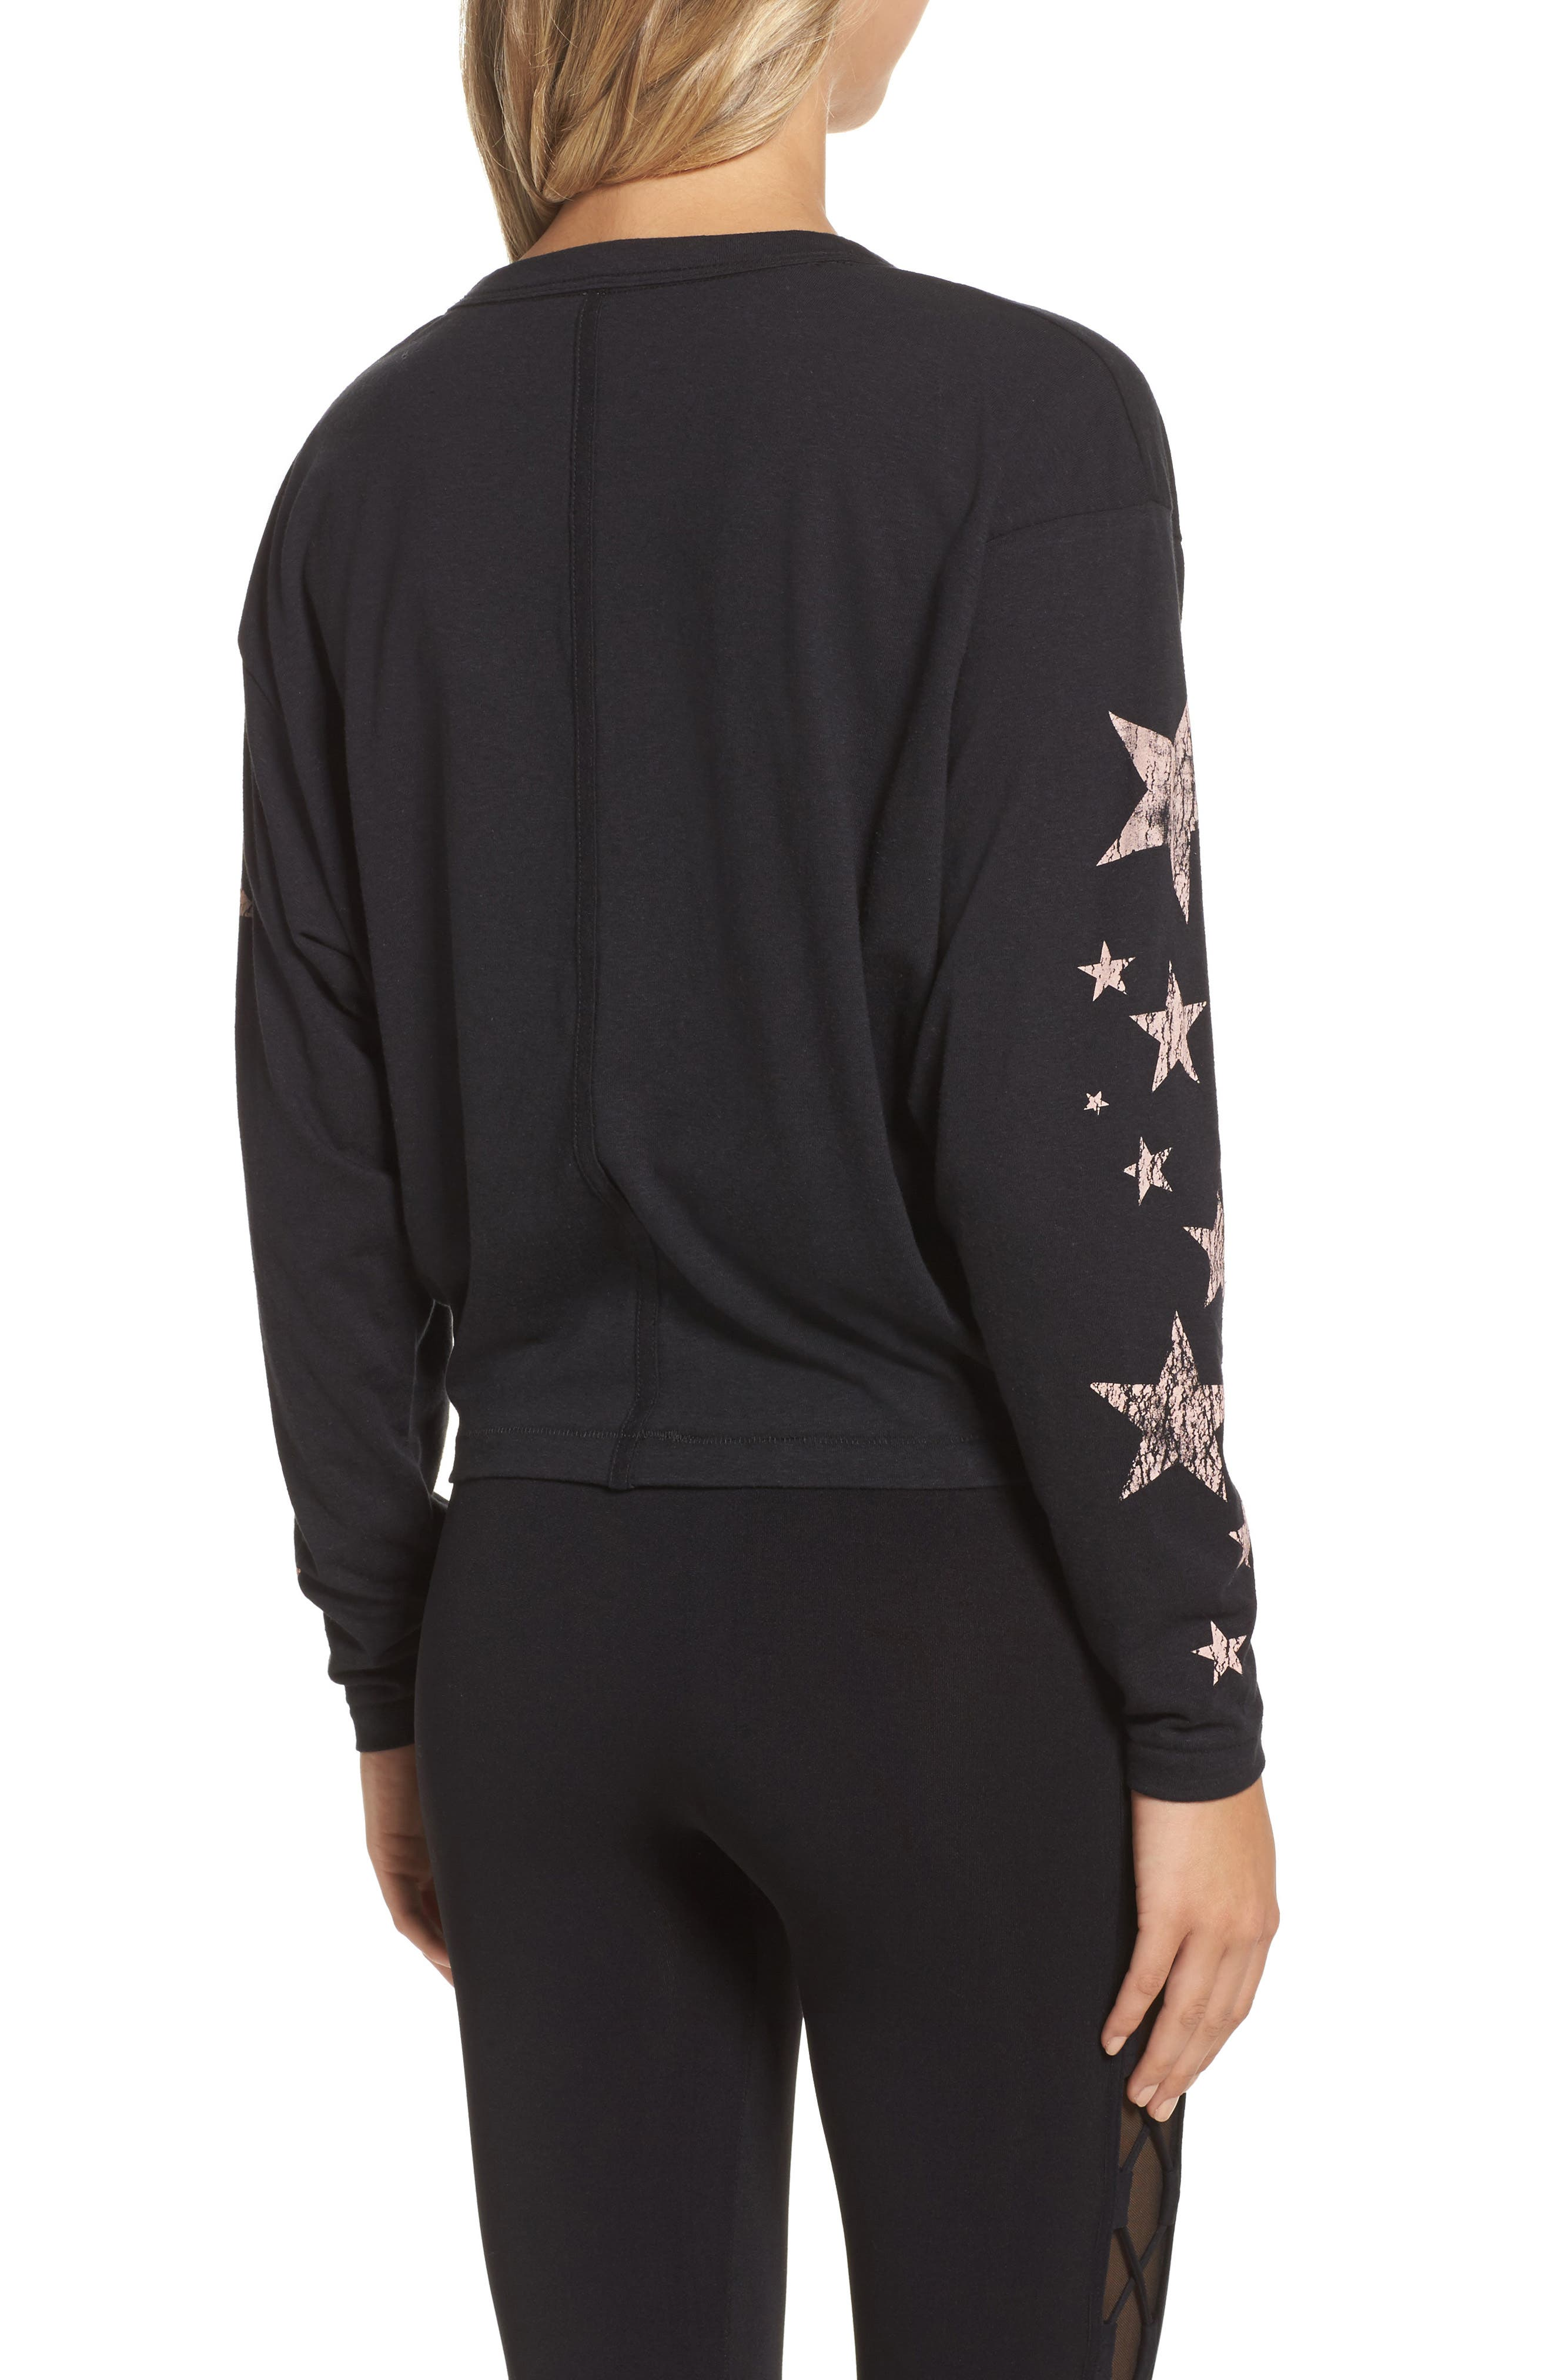 Free People Melrose Star Graphic Top,                             Alternate thumbnail 2, color,                             BLACK